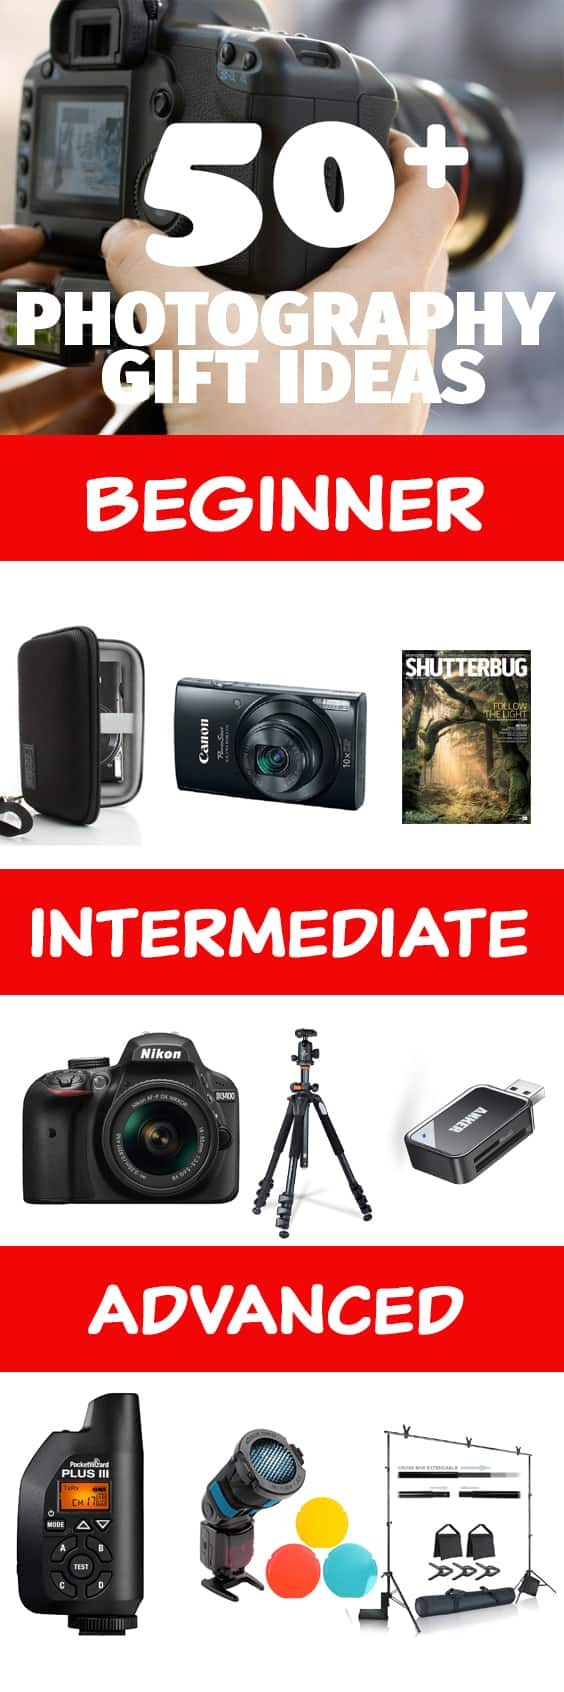 Intermediate Photographer Gift Guide The Gifty Girl